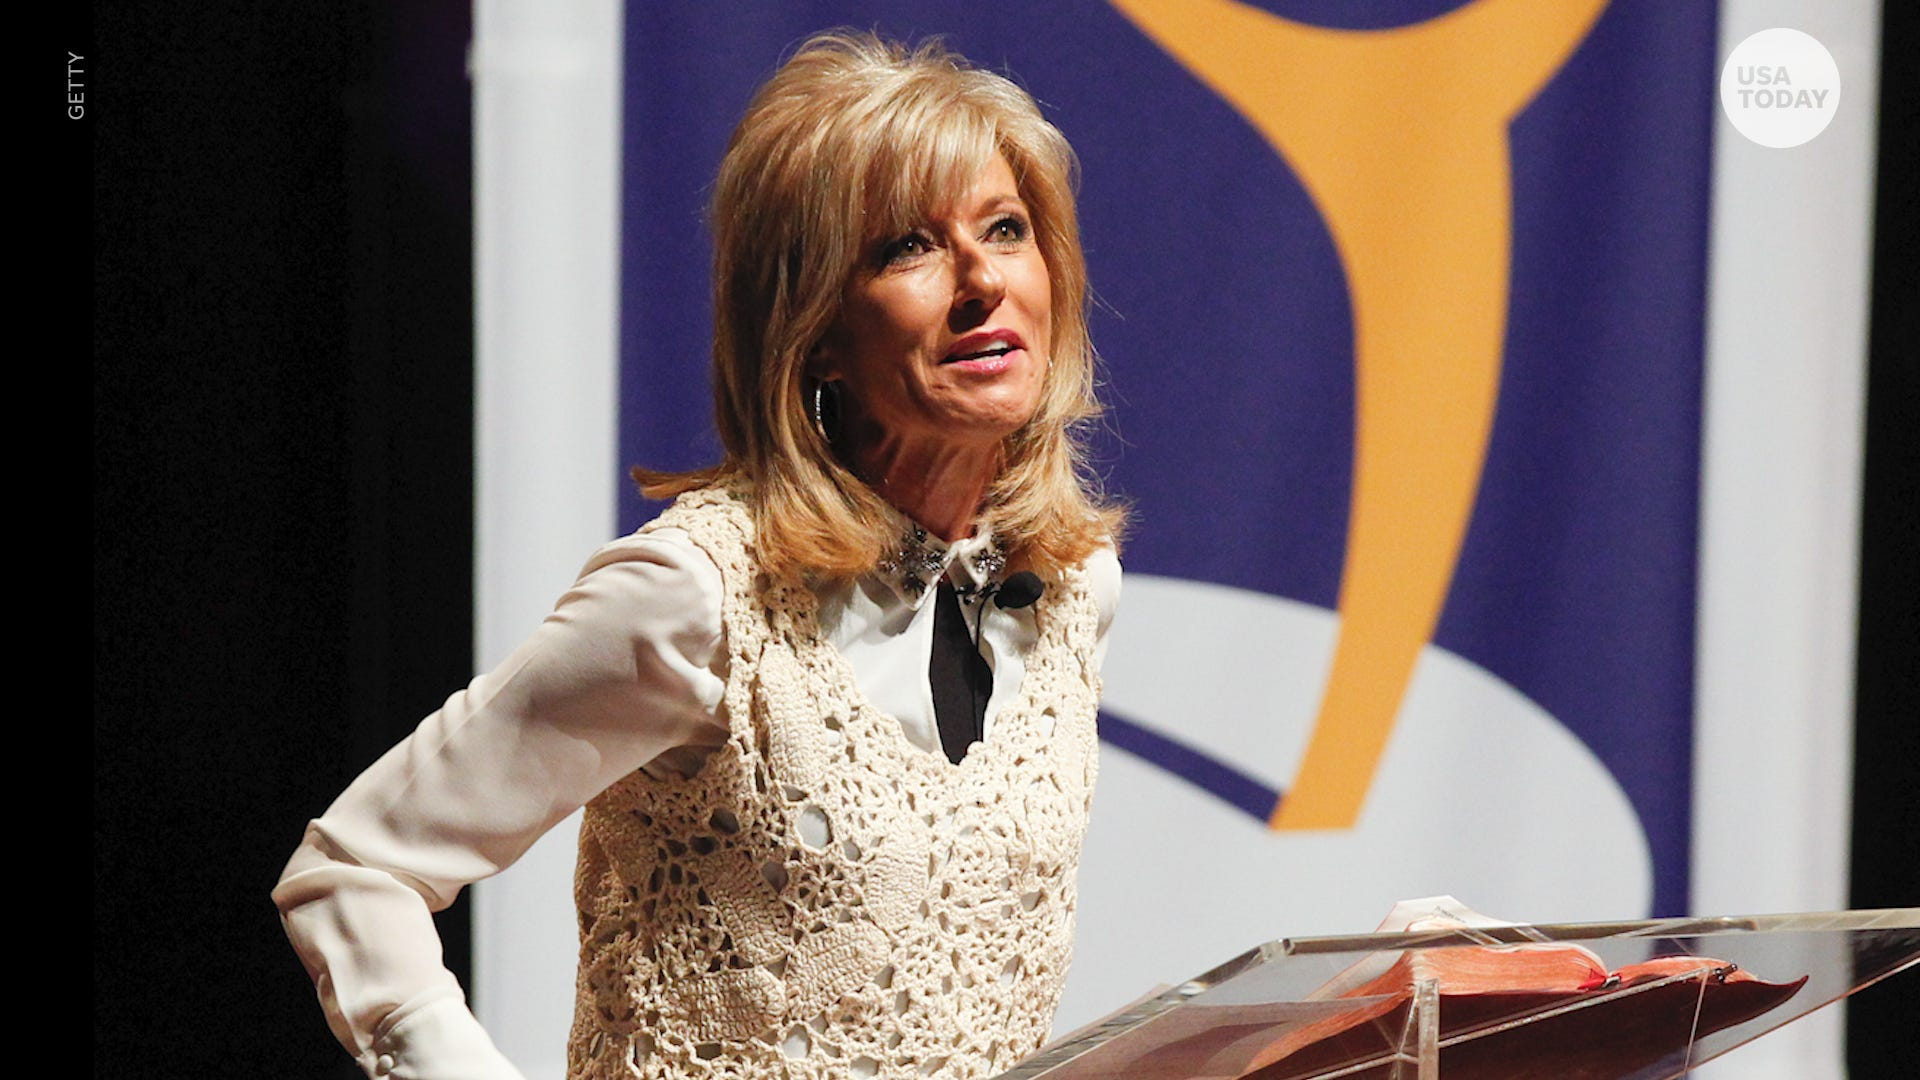 Beth Moore, best-selling author and Trump critic, says she is no longer Southern Baptist